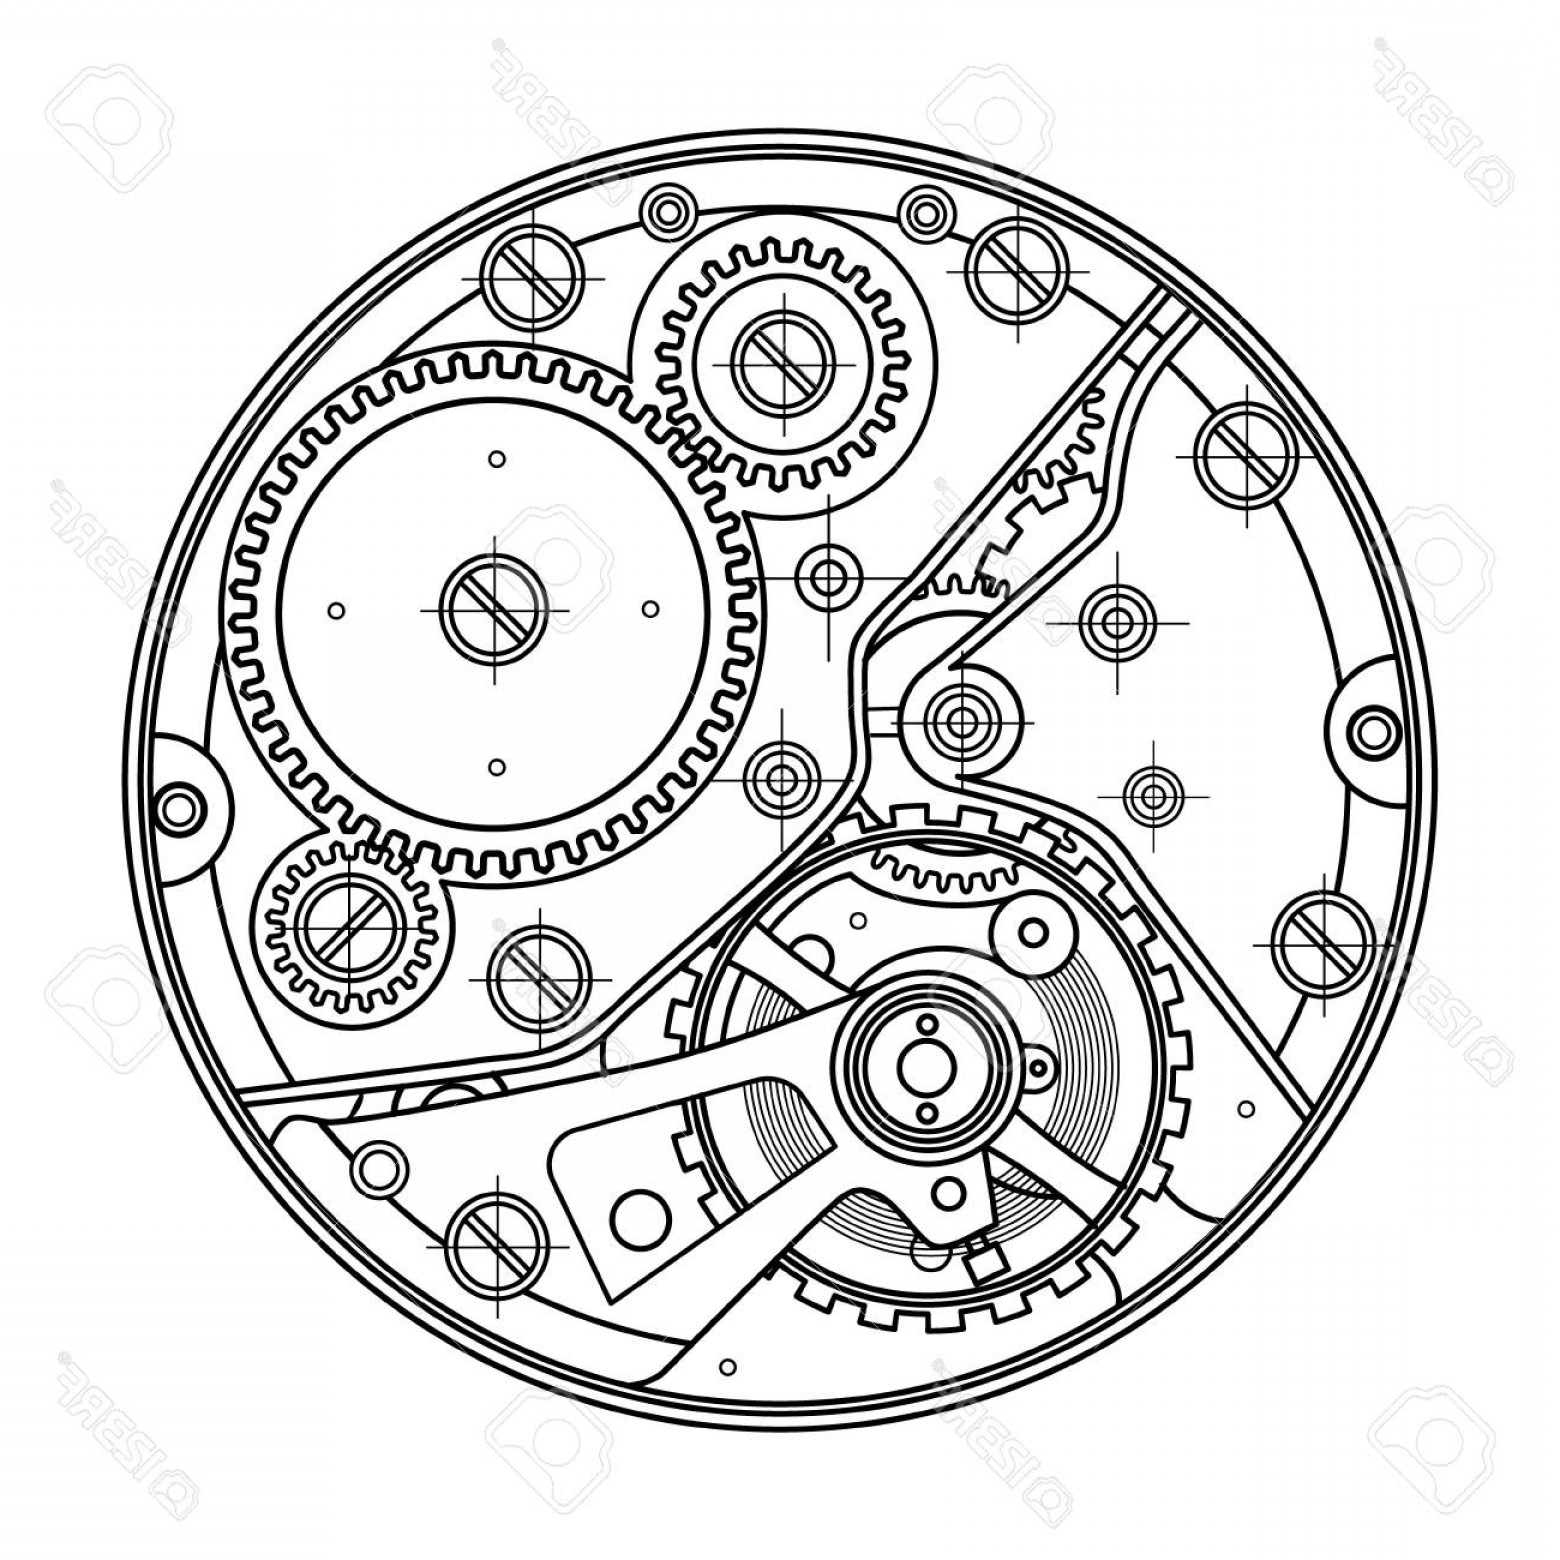 Watch Gears Vector: Photostock Vector Mechanical Watches With Gears Drawing Of The Internal Device It Can Be Used As An Example Of Harmoni